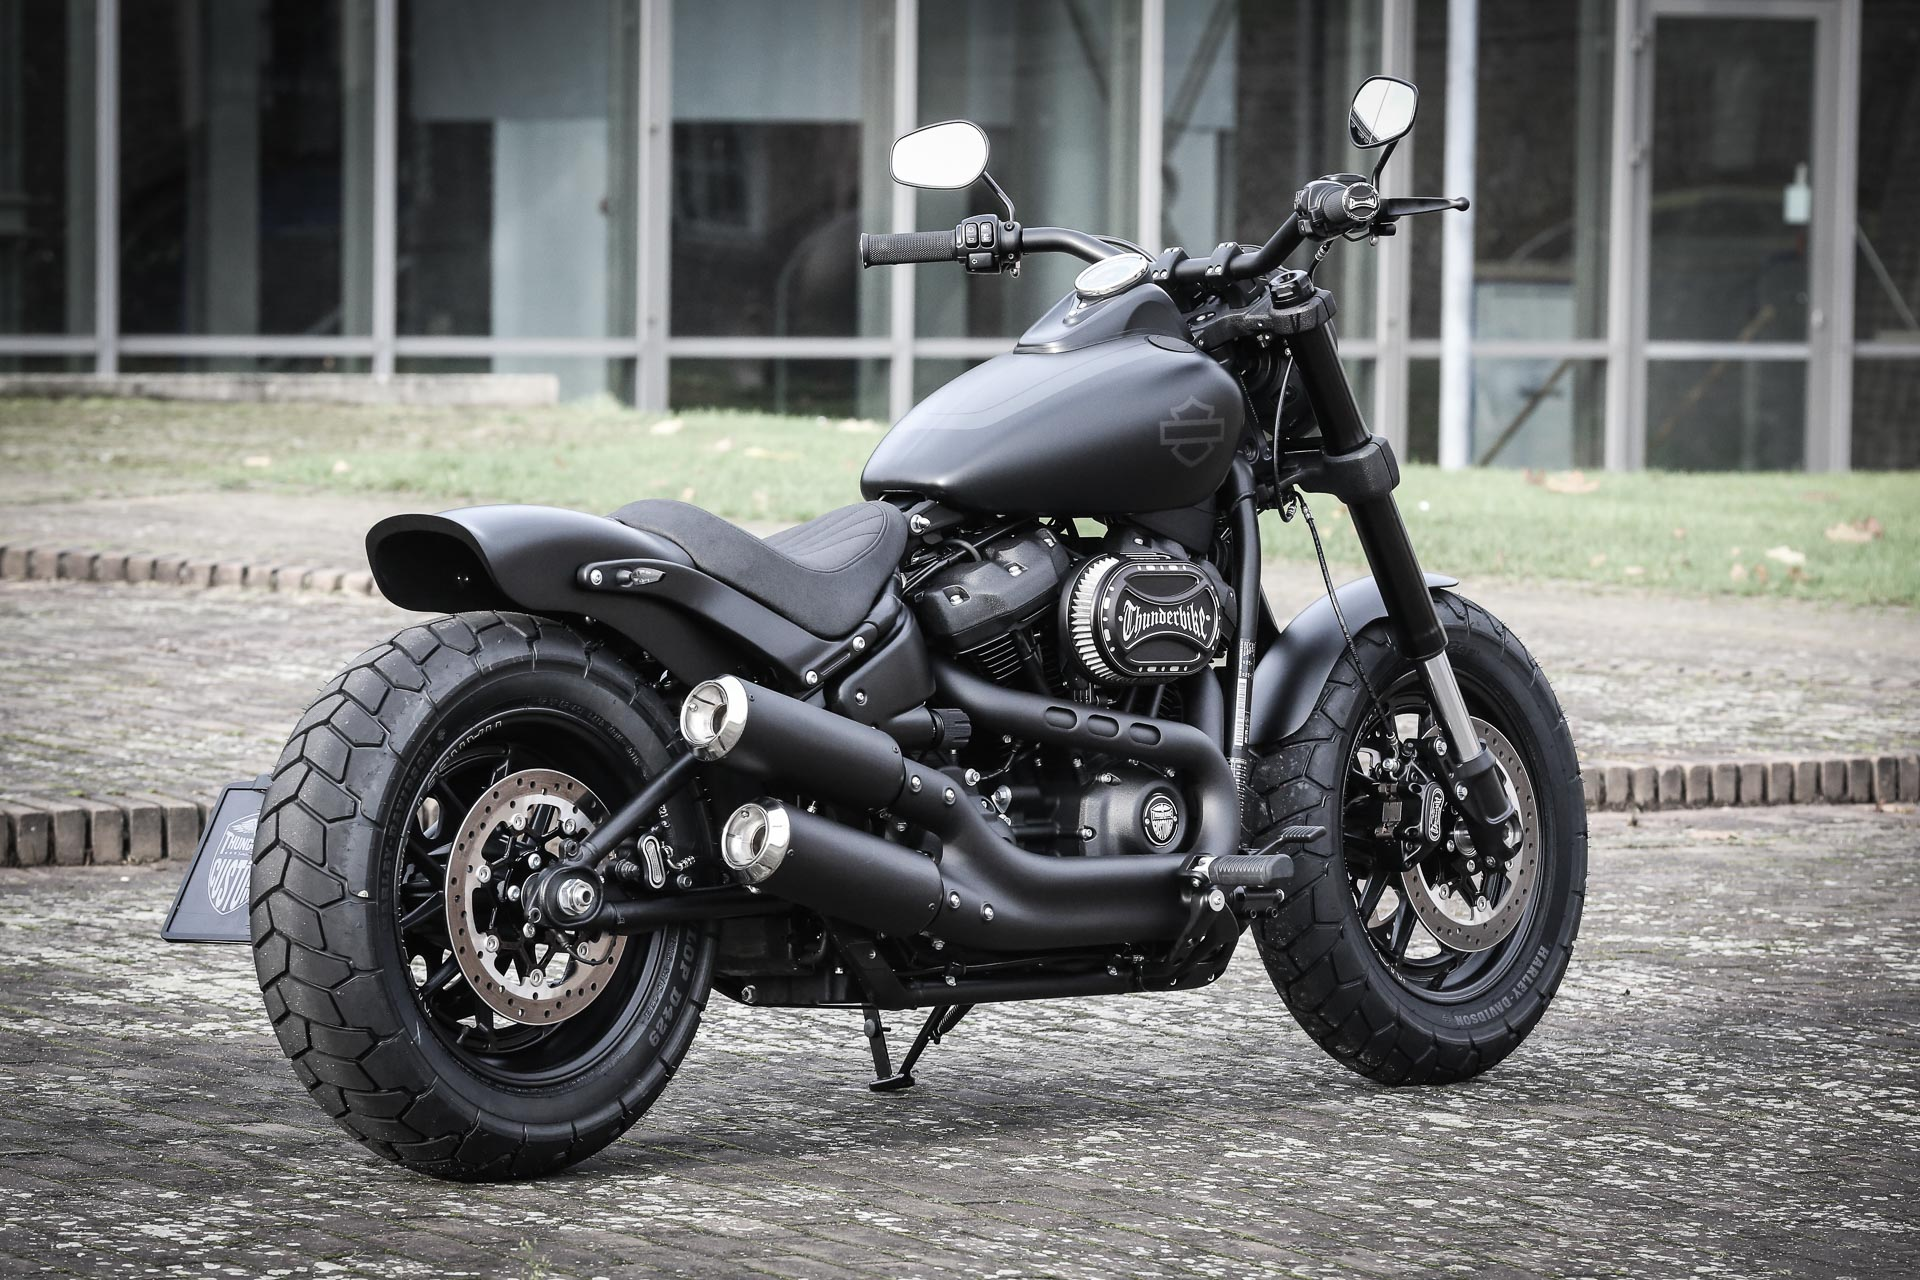 thunderbike mr pepper h d fat bob fxfbs softail 114cui umbau. Black Bedroom Furniture Sets. Home Design Ideas